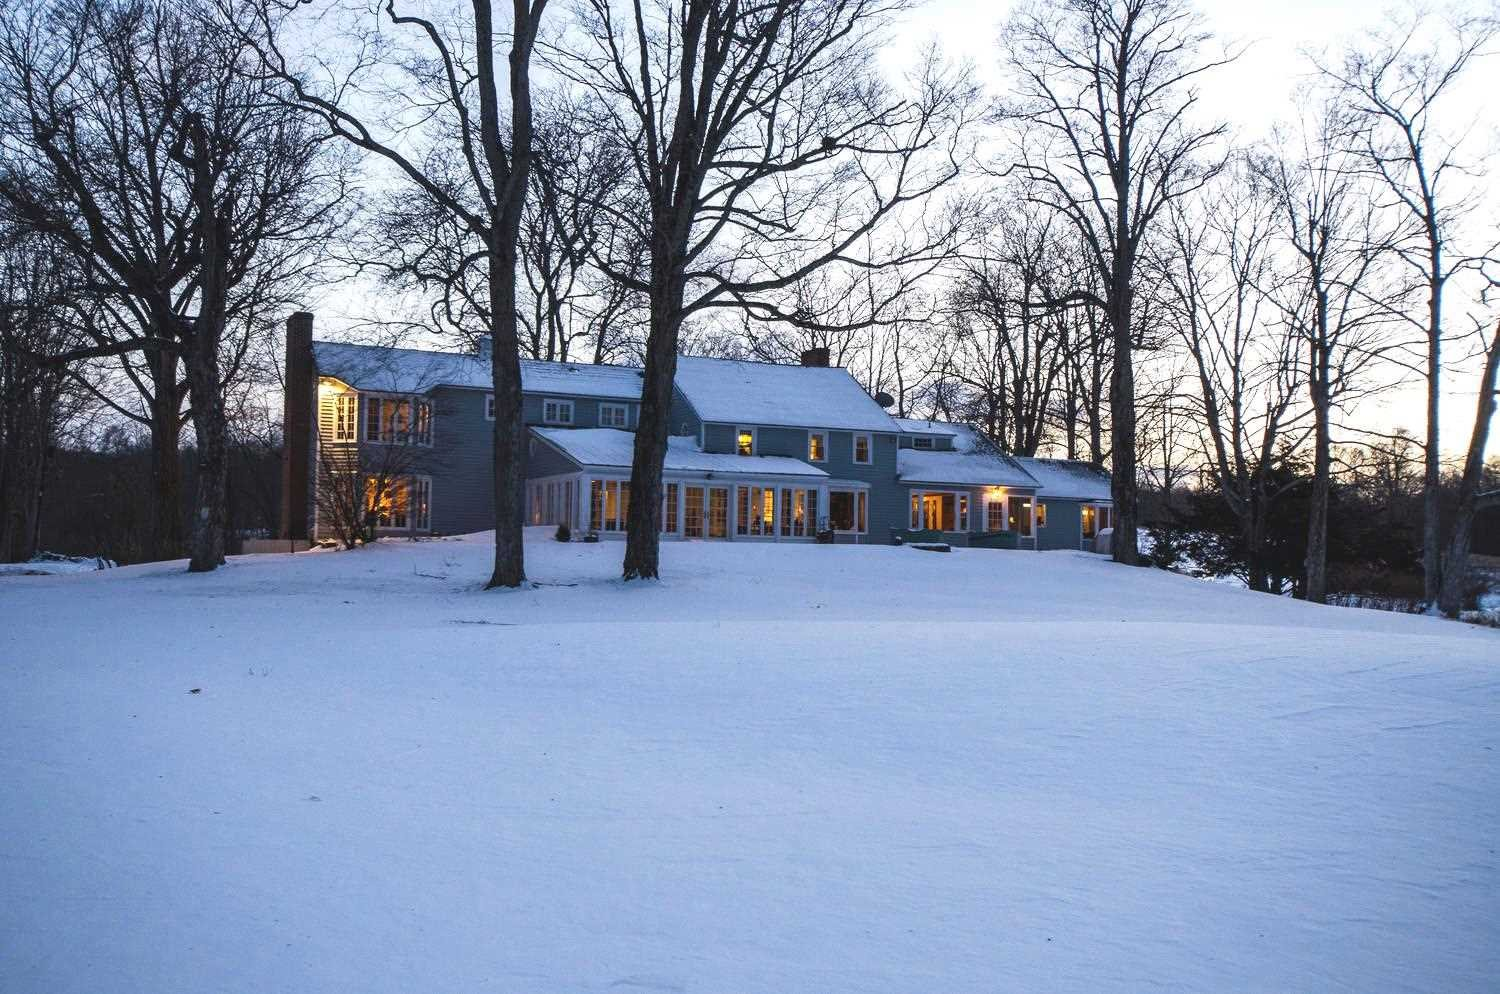 Single Family Home for Sale at 1078 NETHERWOOD Road 1078 NETHERWOOD Road Pleasant Valley, New York 12538 United States